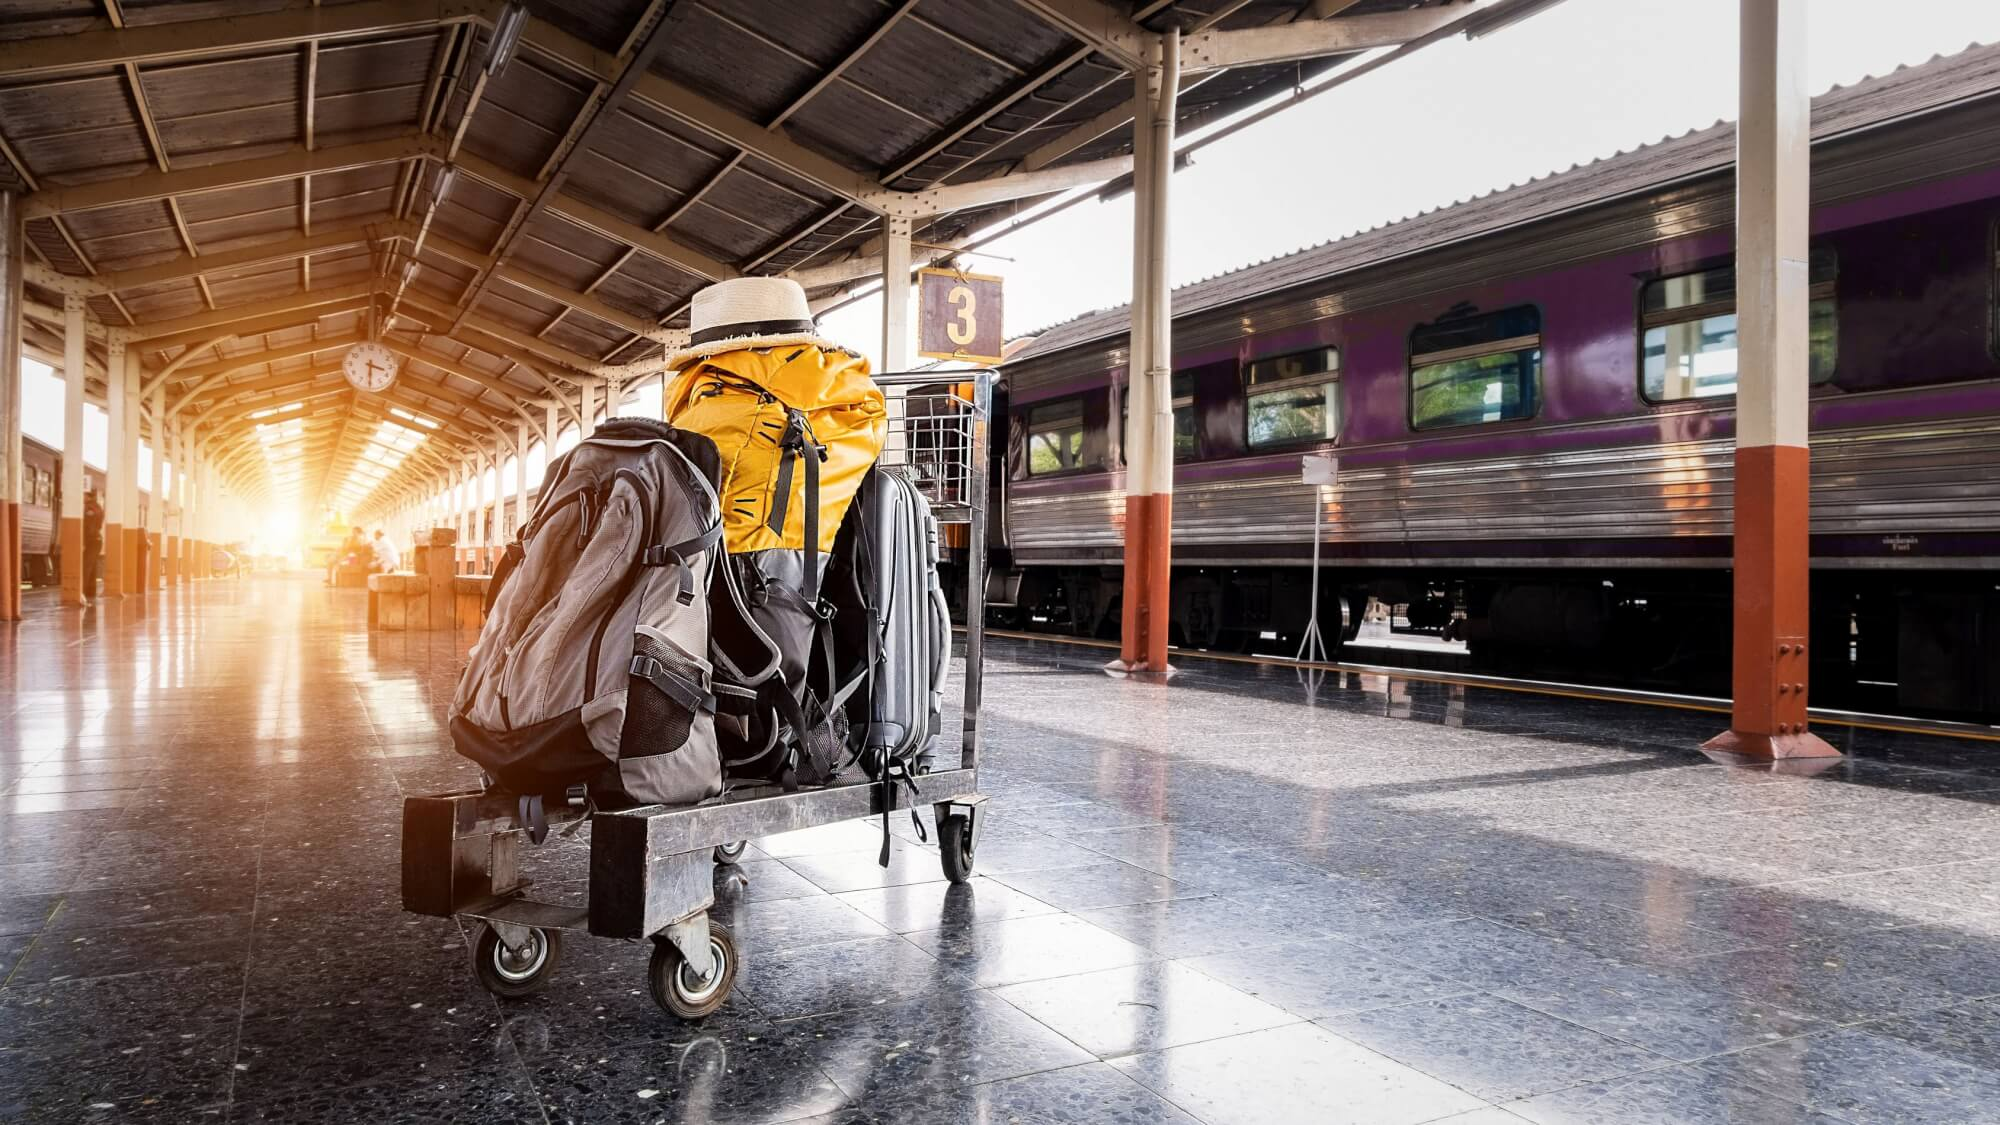 Several Bags on Trolley Near Train in Station